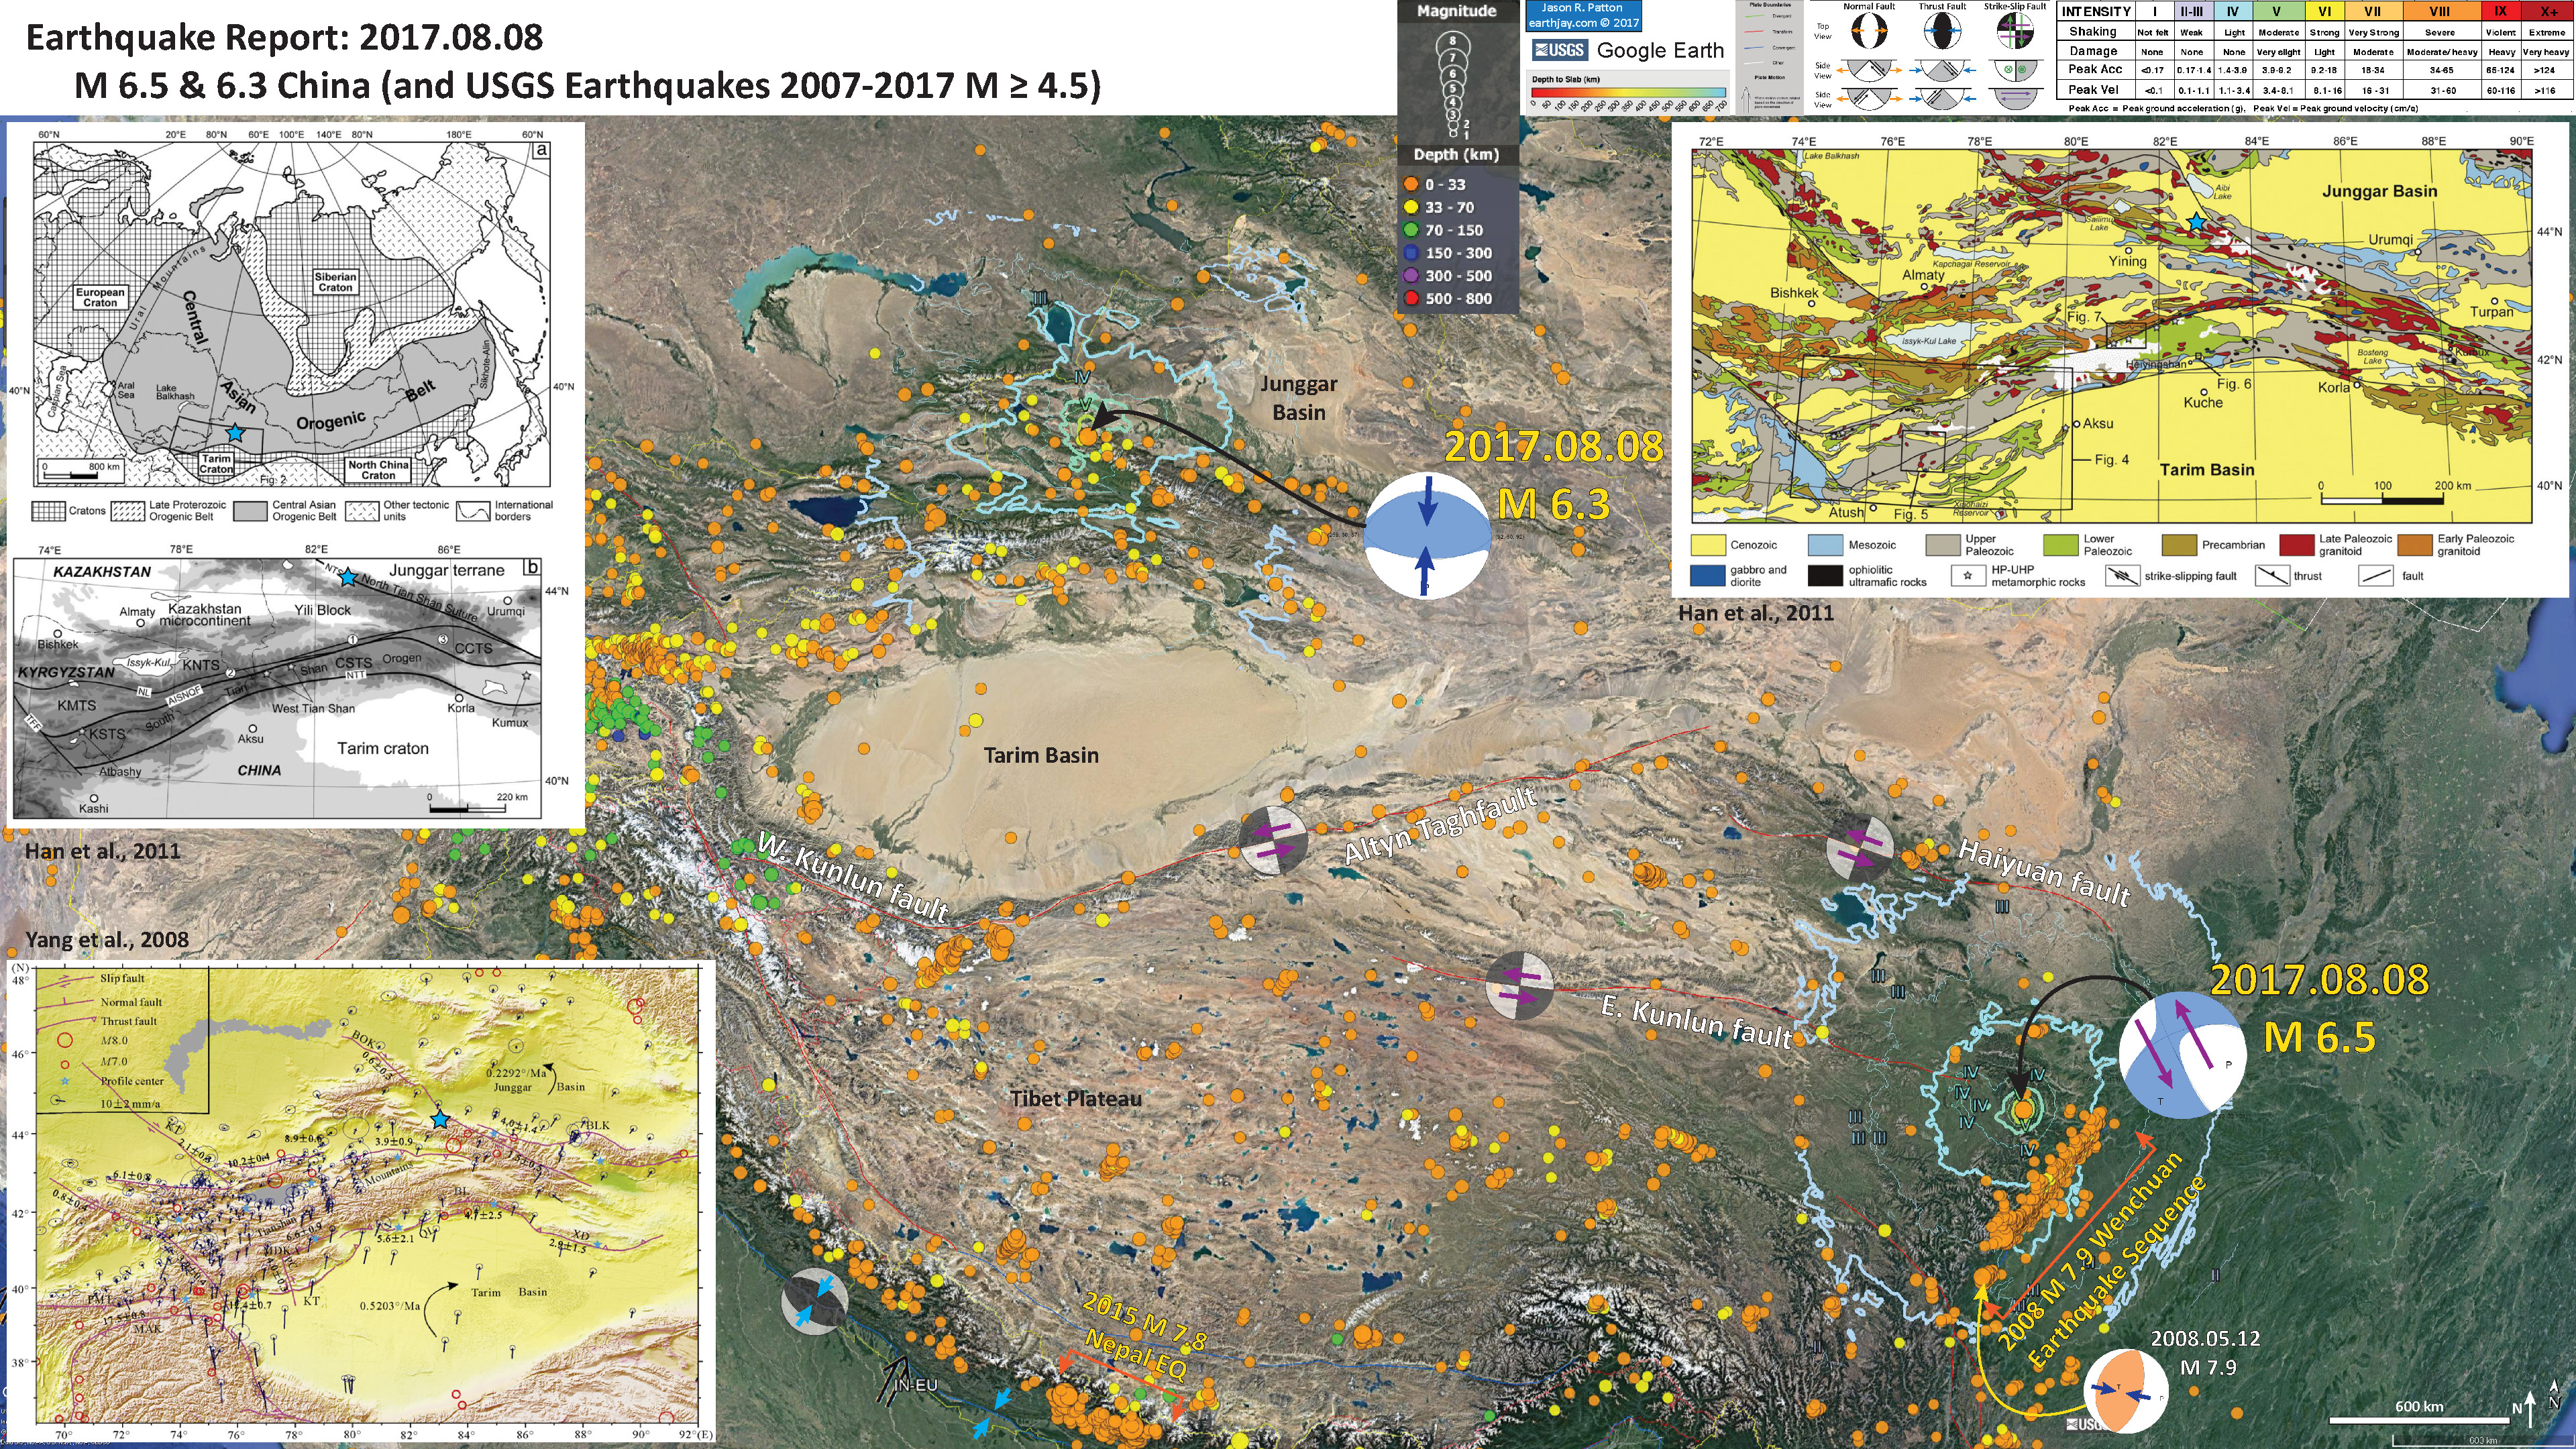 todays earthquake appears associated with the northern tianshan marginal fault a thrust fault that crosses the tainshan mountains see li et al 2016 map